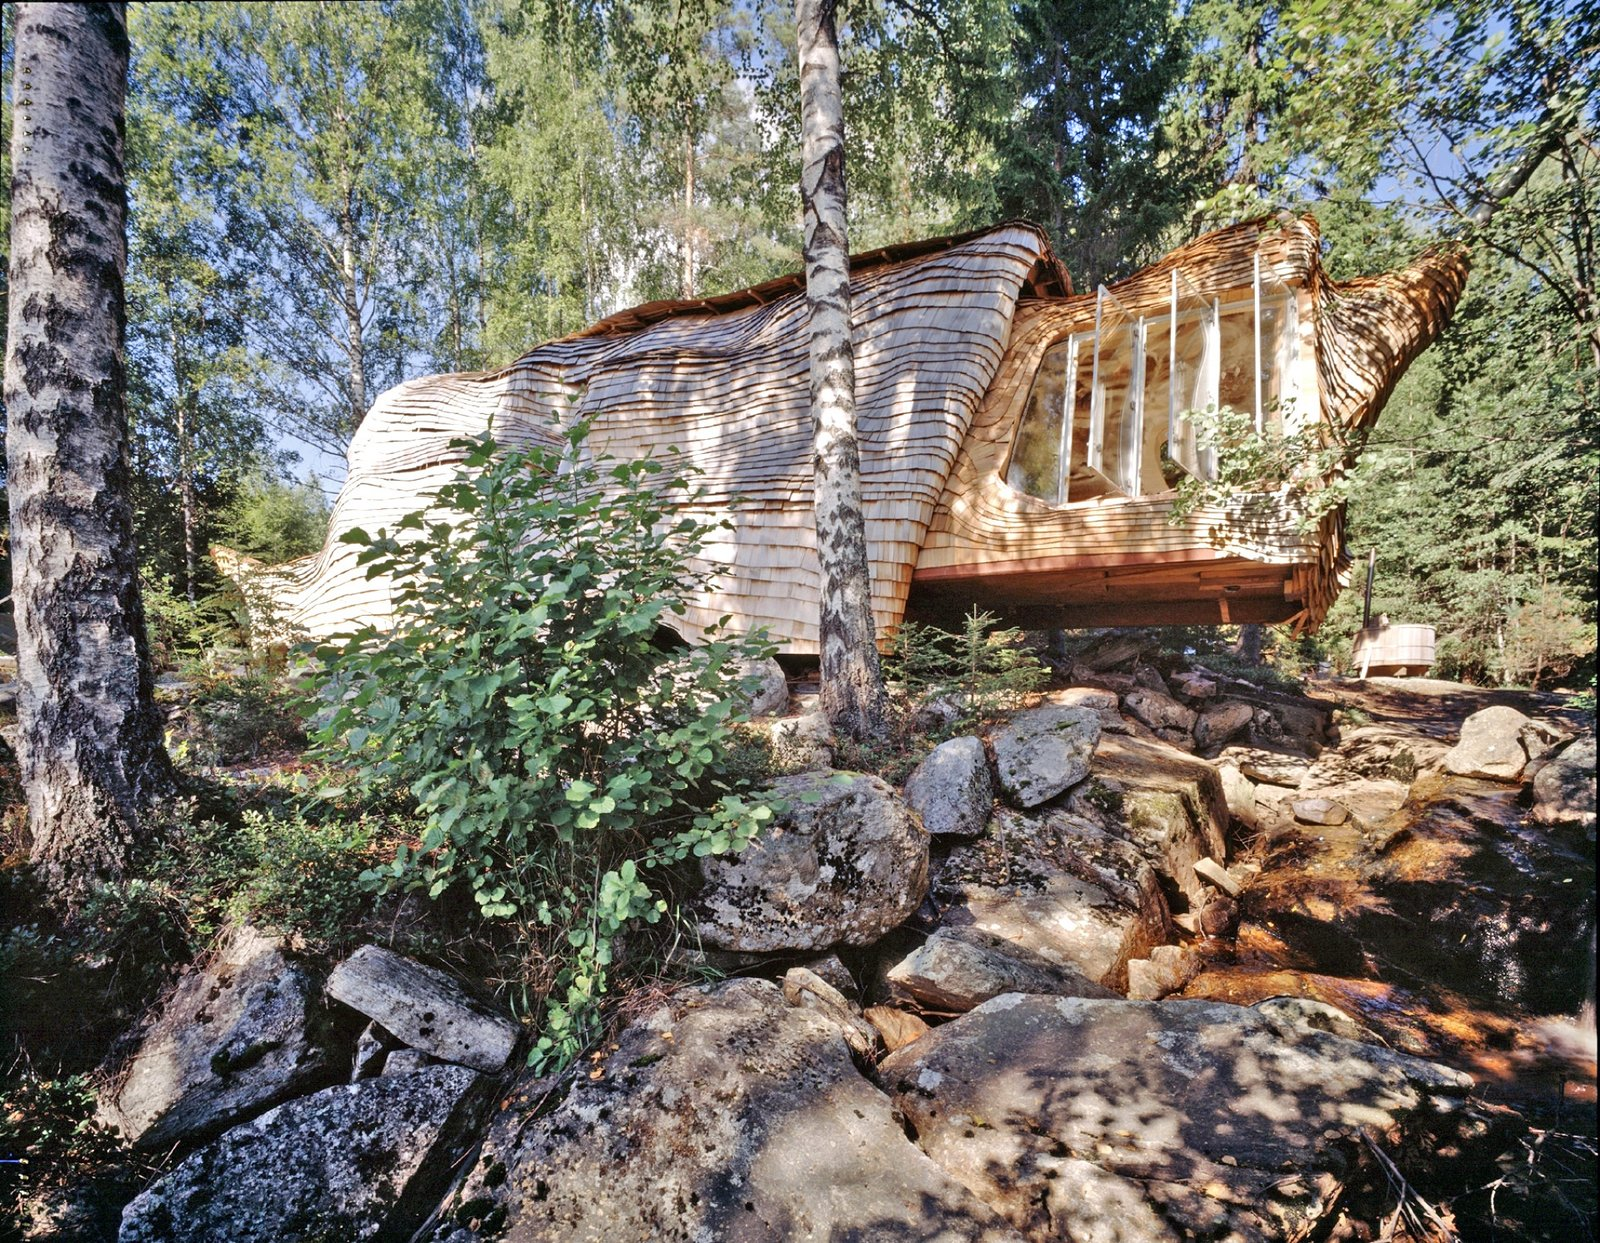 Photo 1 of 11 in Sweden's Ultra-Instagrammable Accordion House Just Hit the Market for $210K